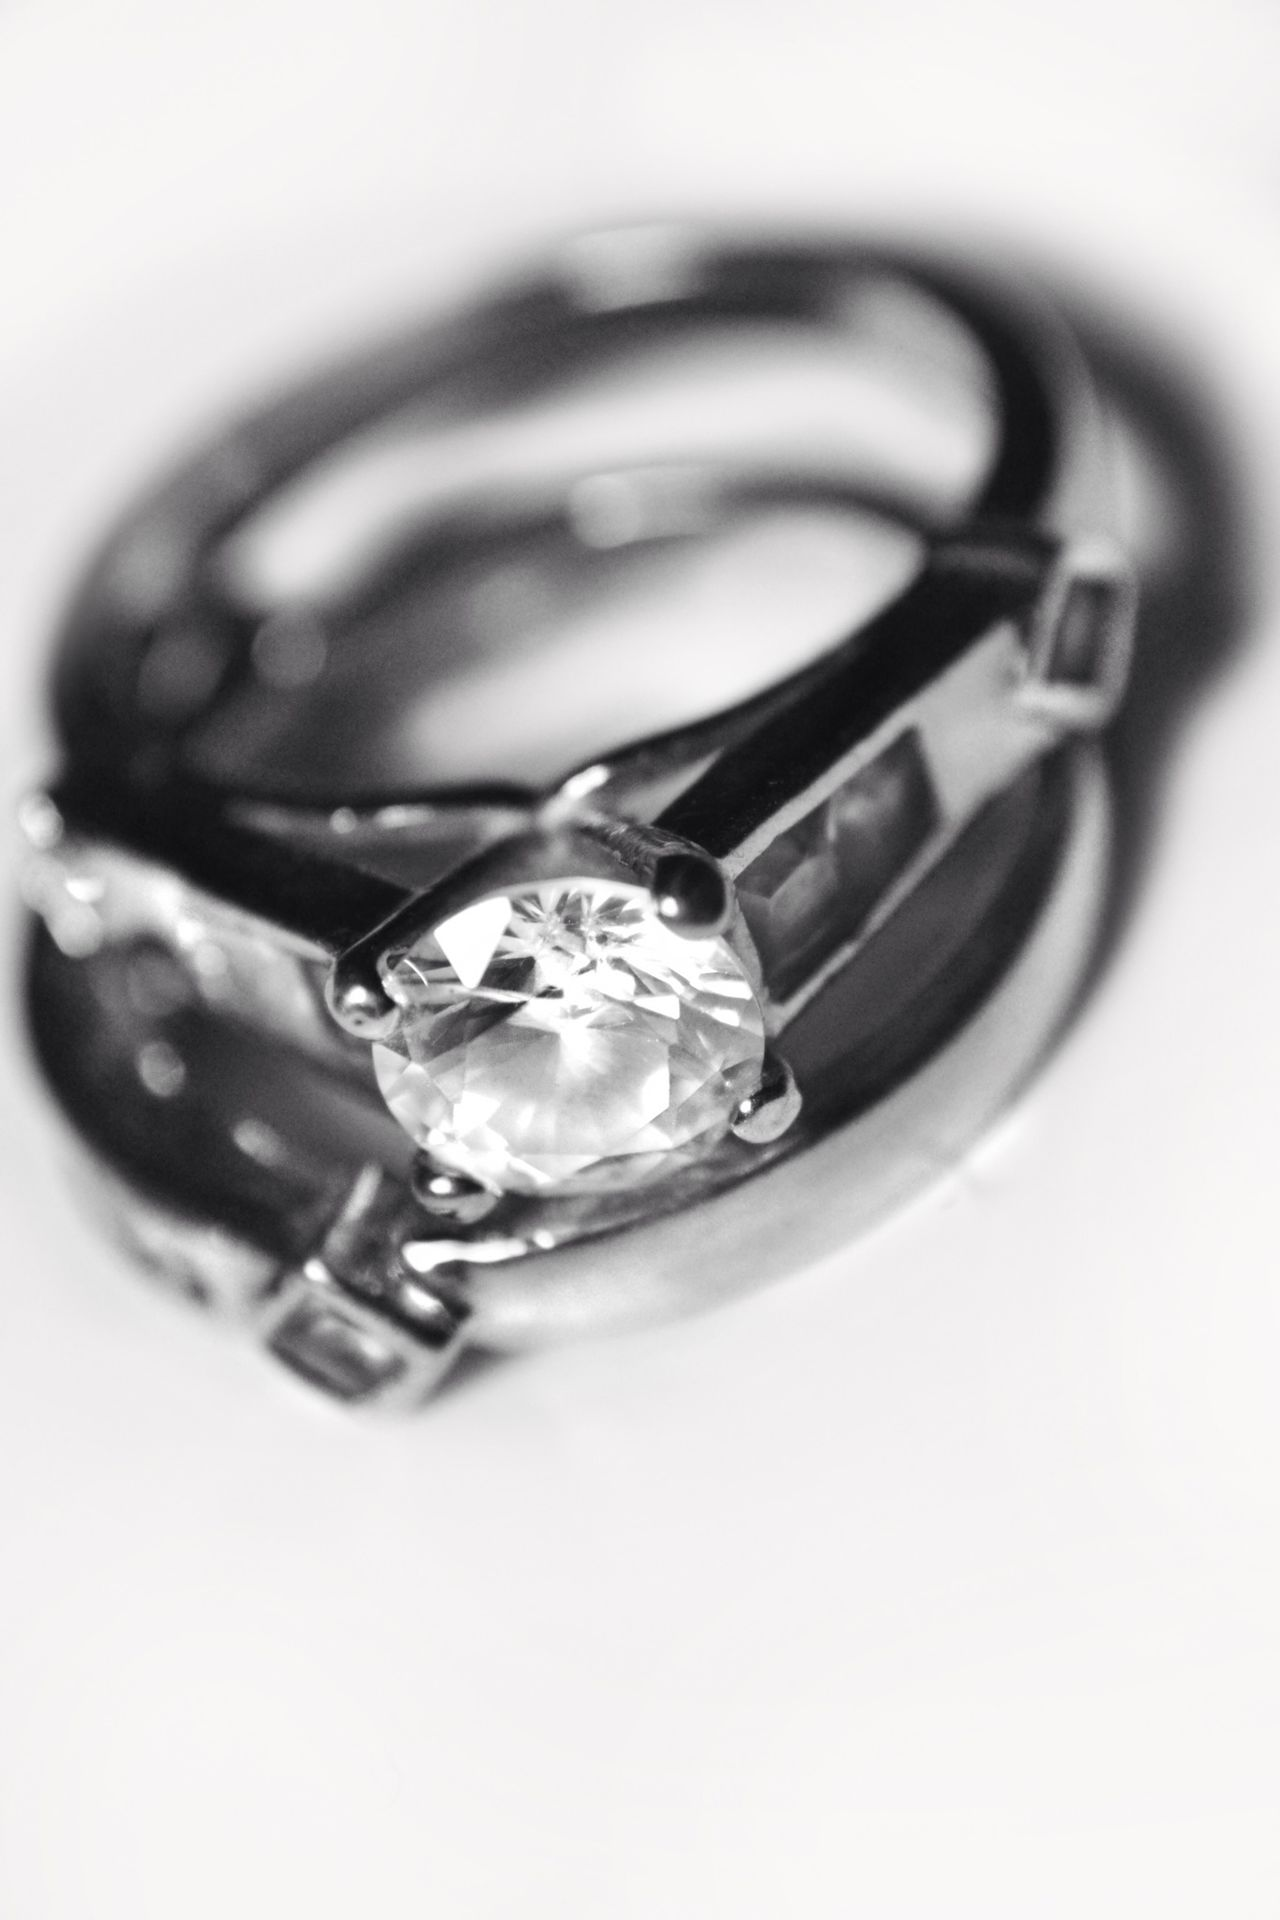 Trying my hand at some Product Photography  Wedding Rings Love